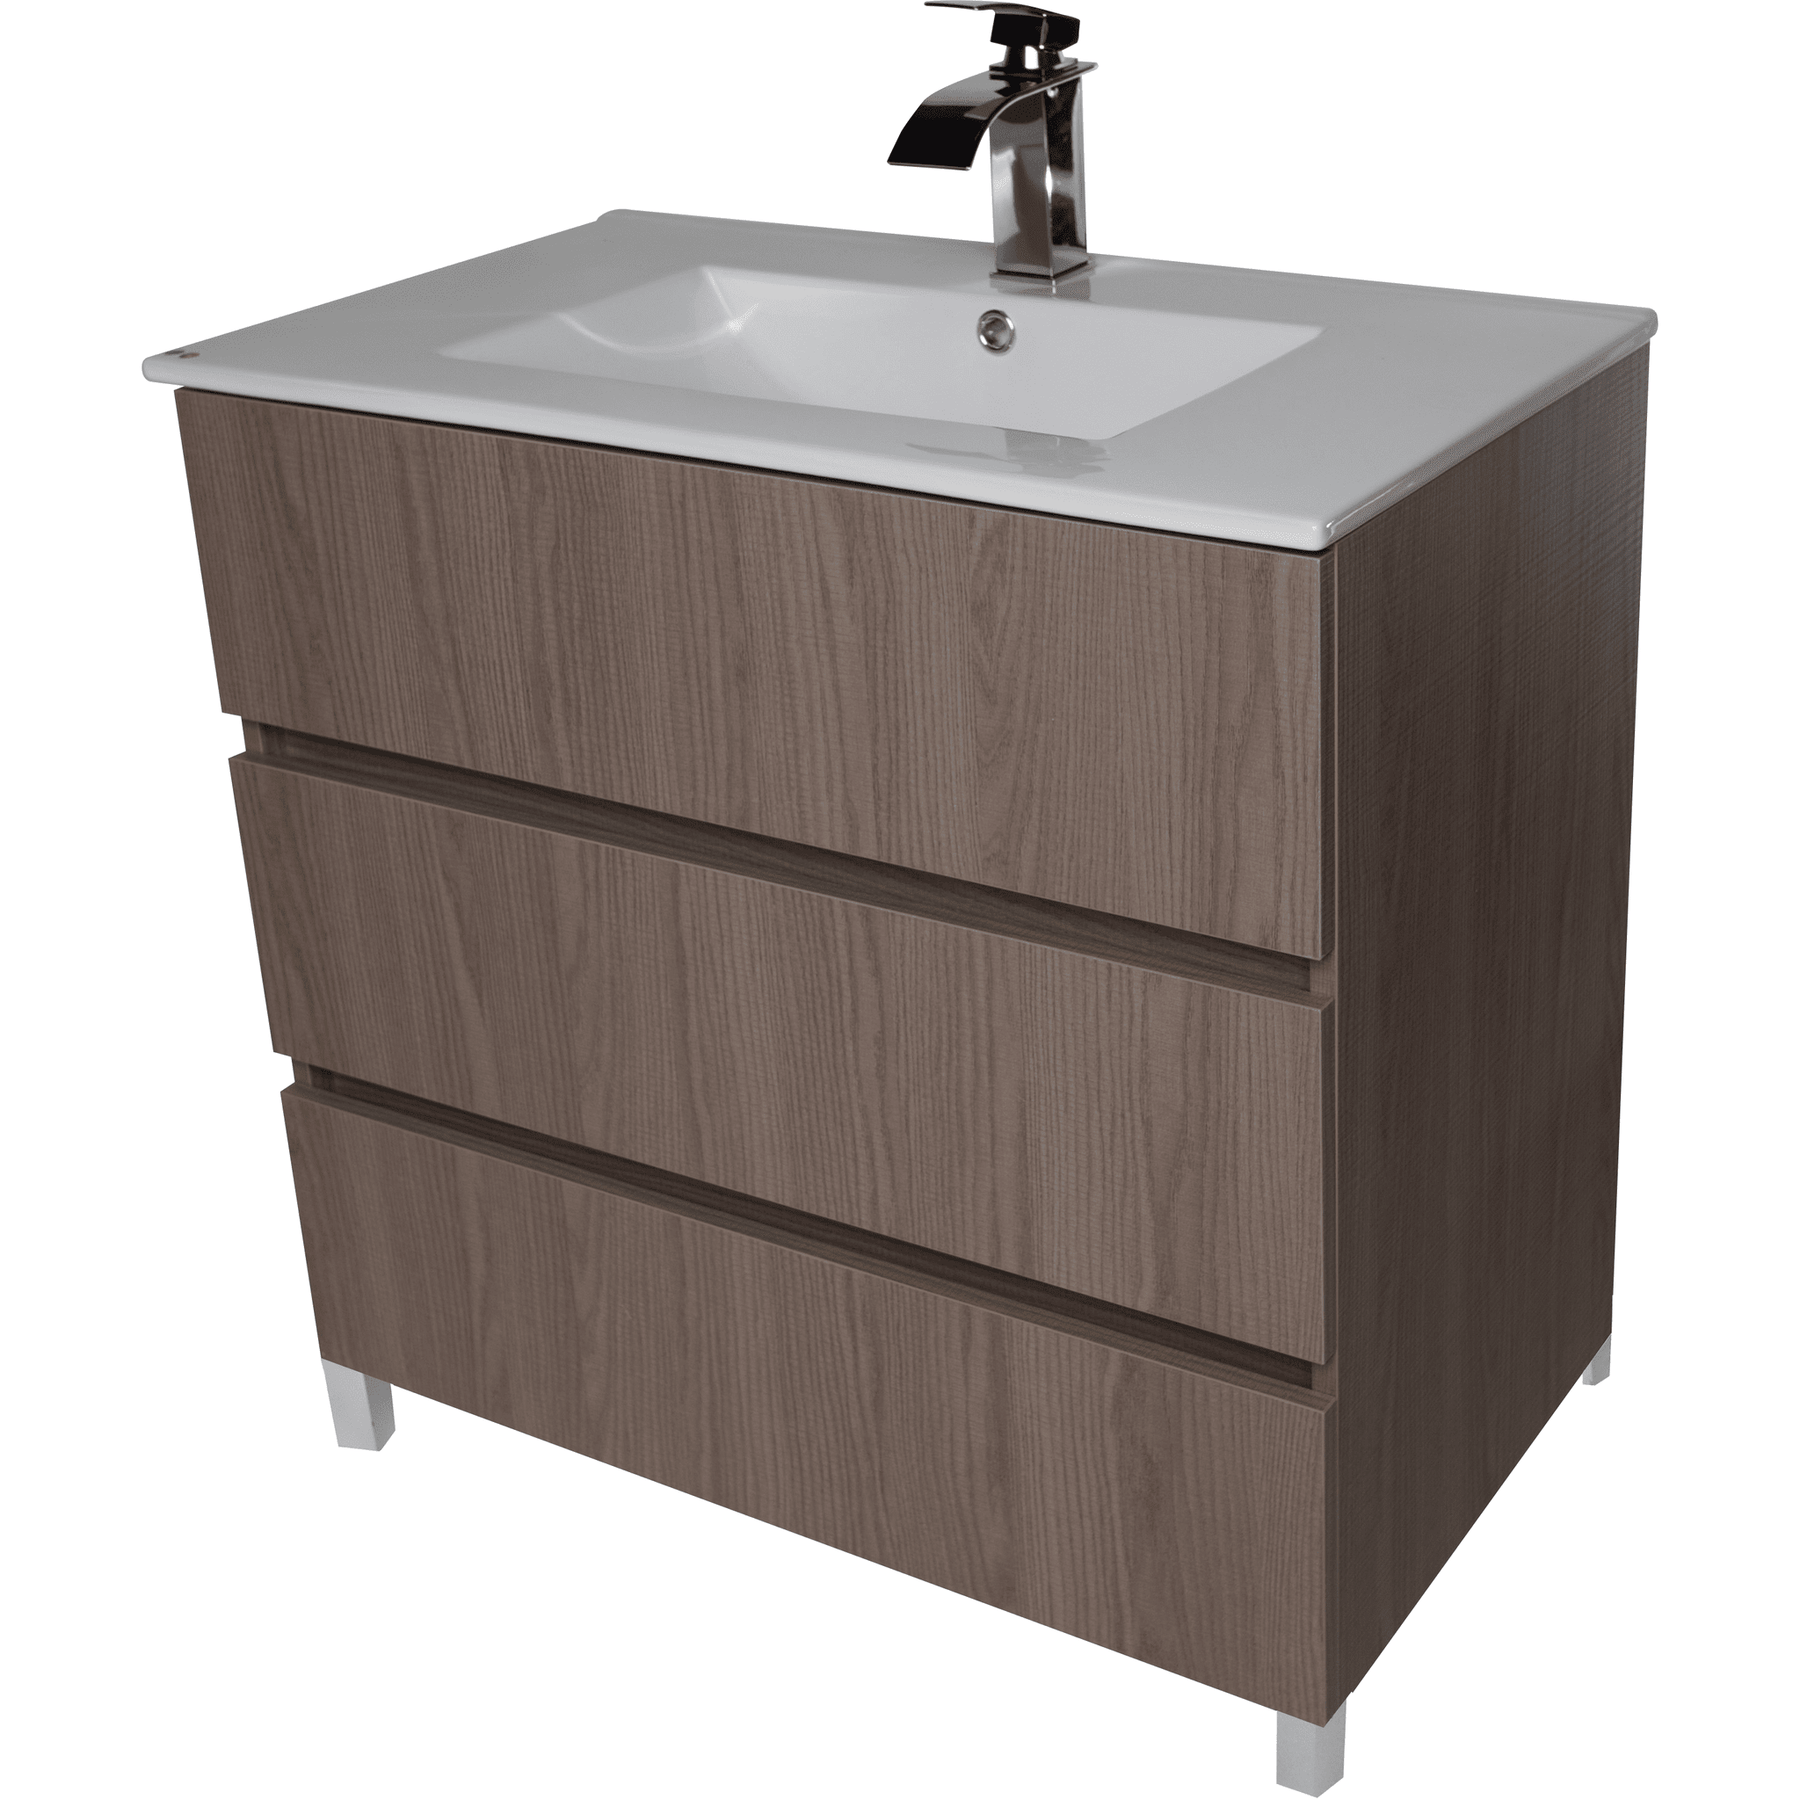 Samba 32 Standing Bathroom Vanity Cabinet Set Bath Furniture With Single Sink Estepa White Wenge Cv Bath Collection Bathroom Vanities And Sink Consoles 1300 00 1400 00 1 Business Day 3 Drawers 30